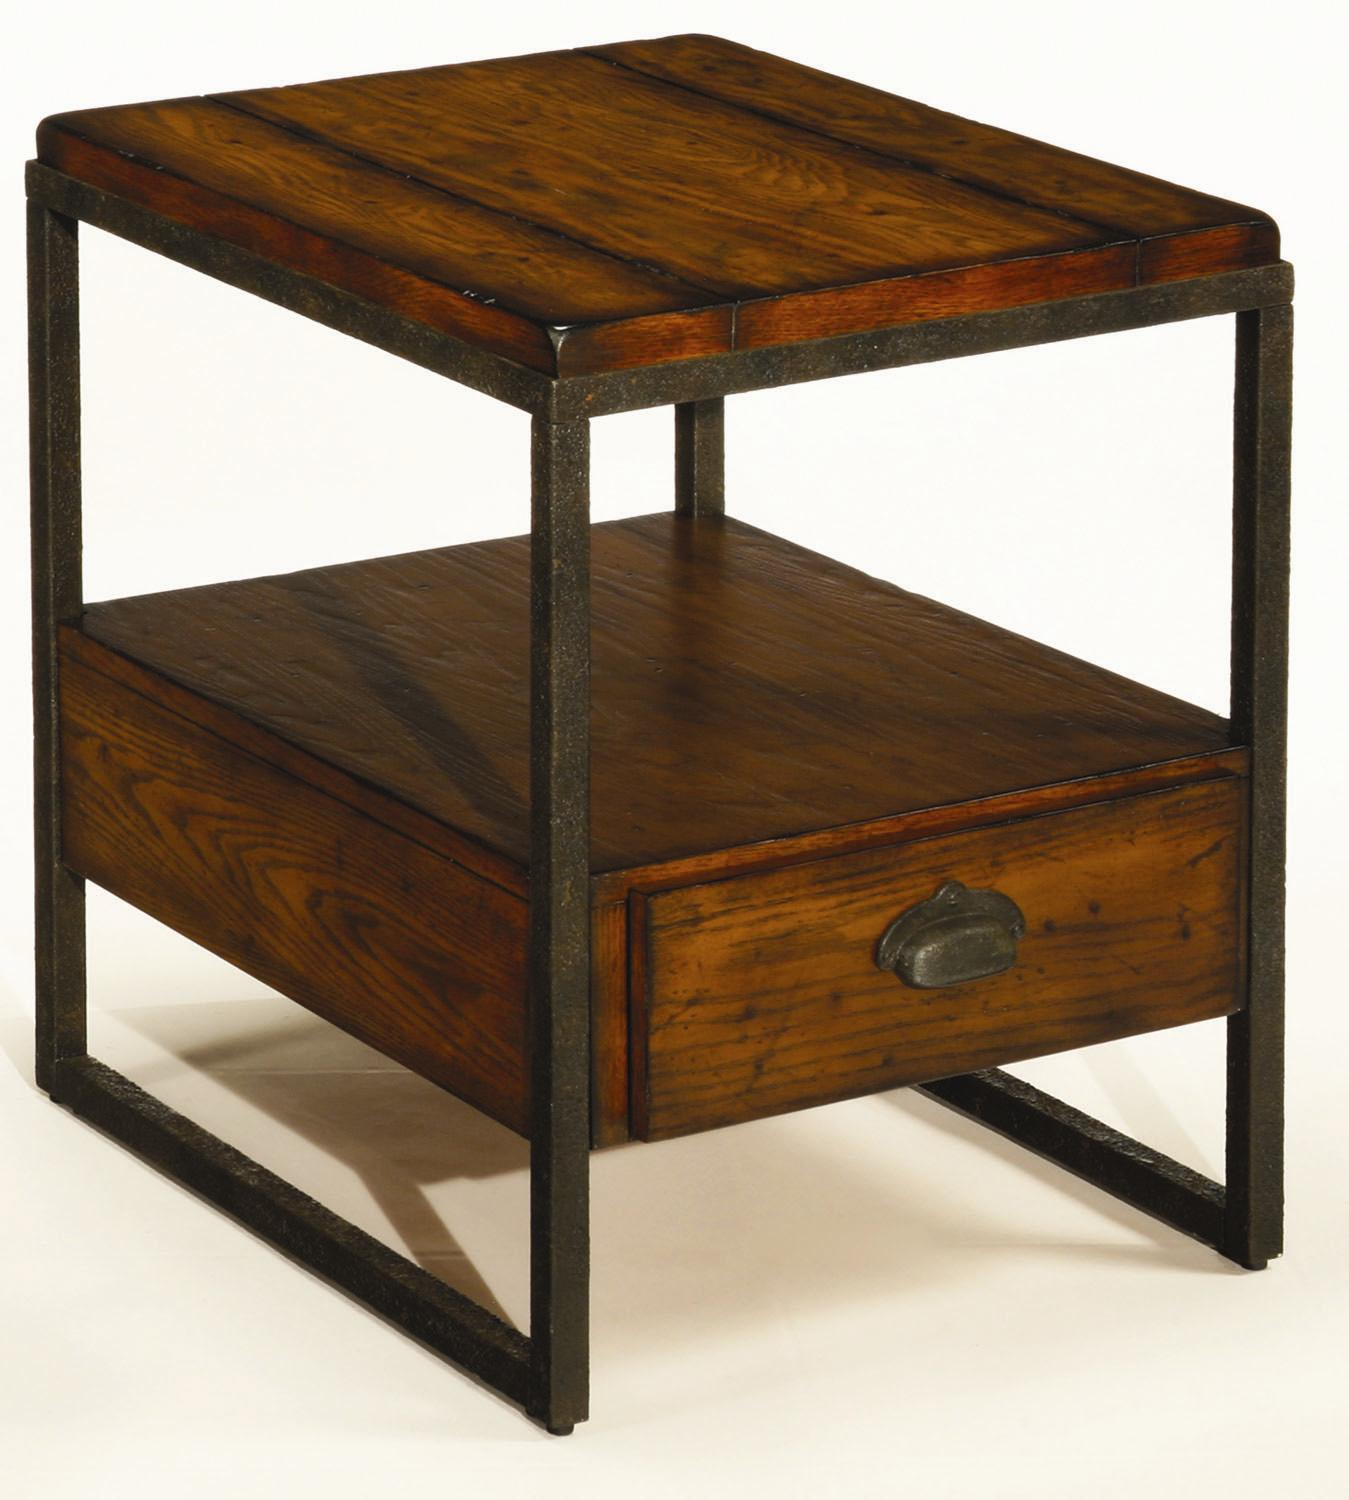 Baja Rectangular Drawer End Table by Hammary at Alison Craig Home Furnishings